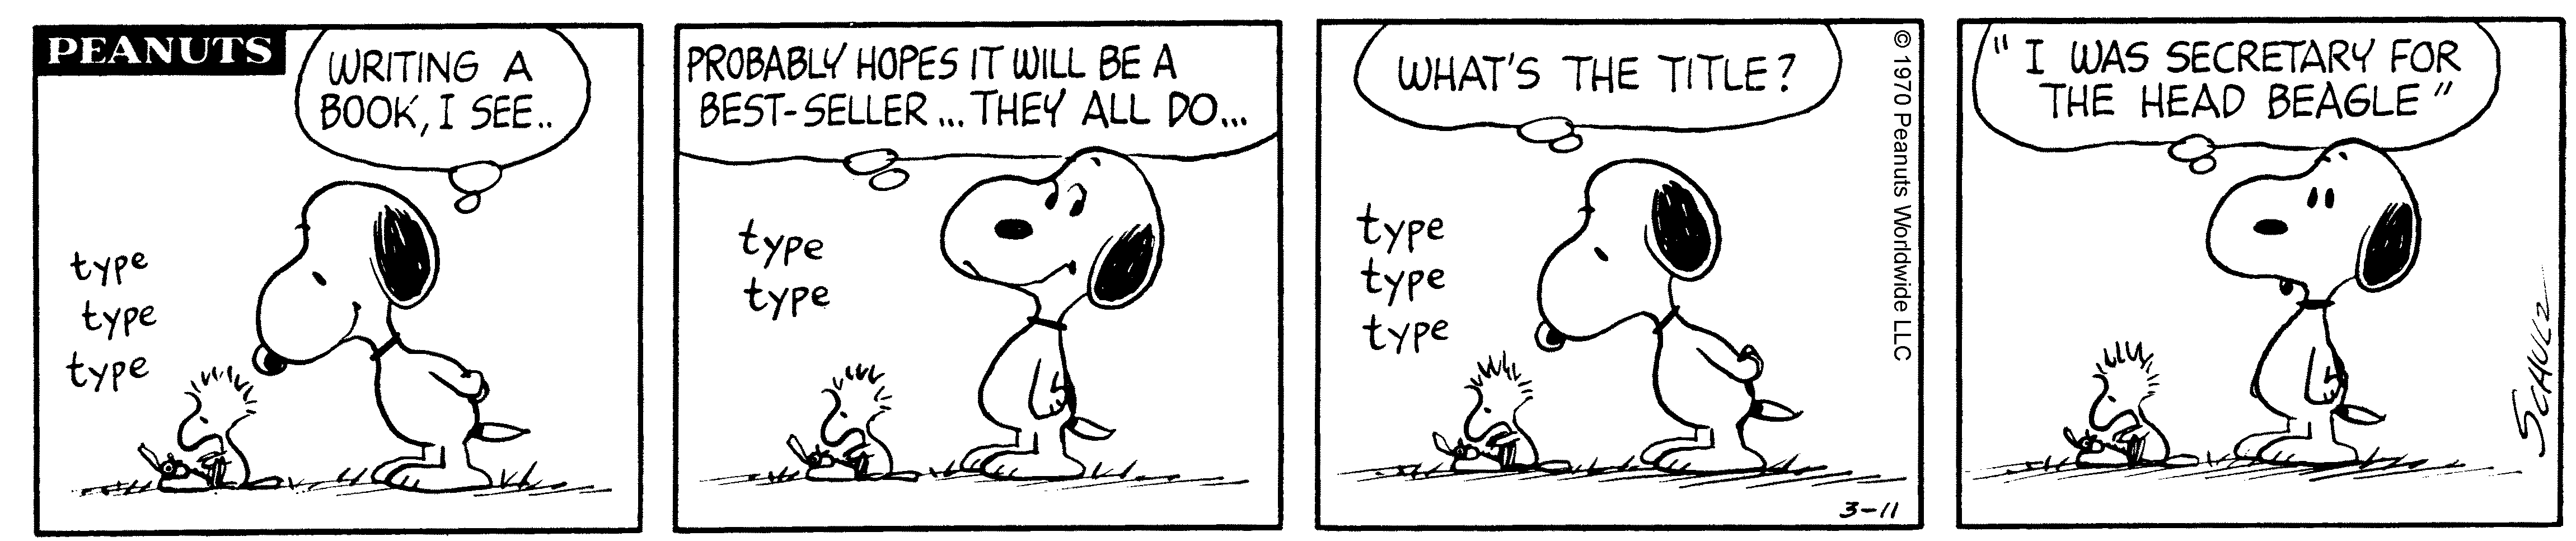 A comic strip of a white dog and a little bird sitting on the ground typing on a typewriter.